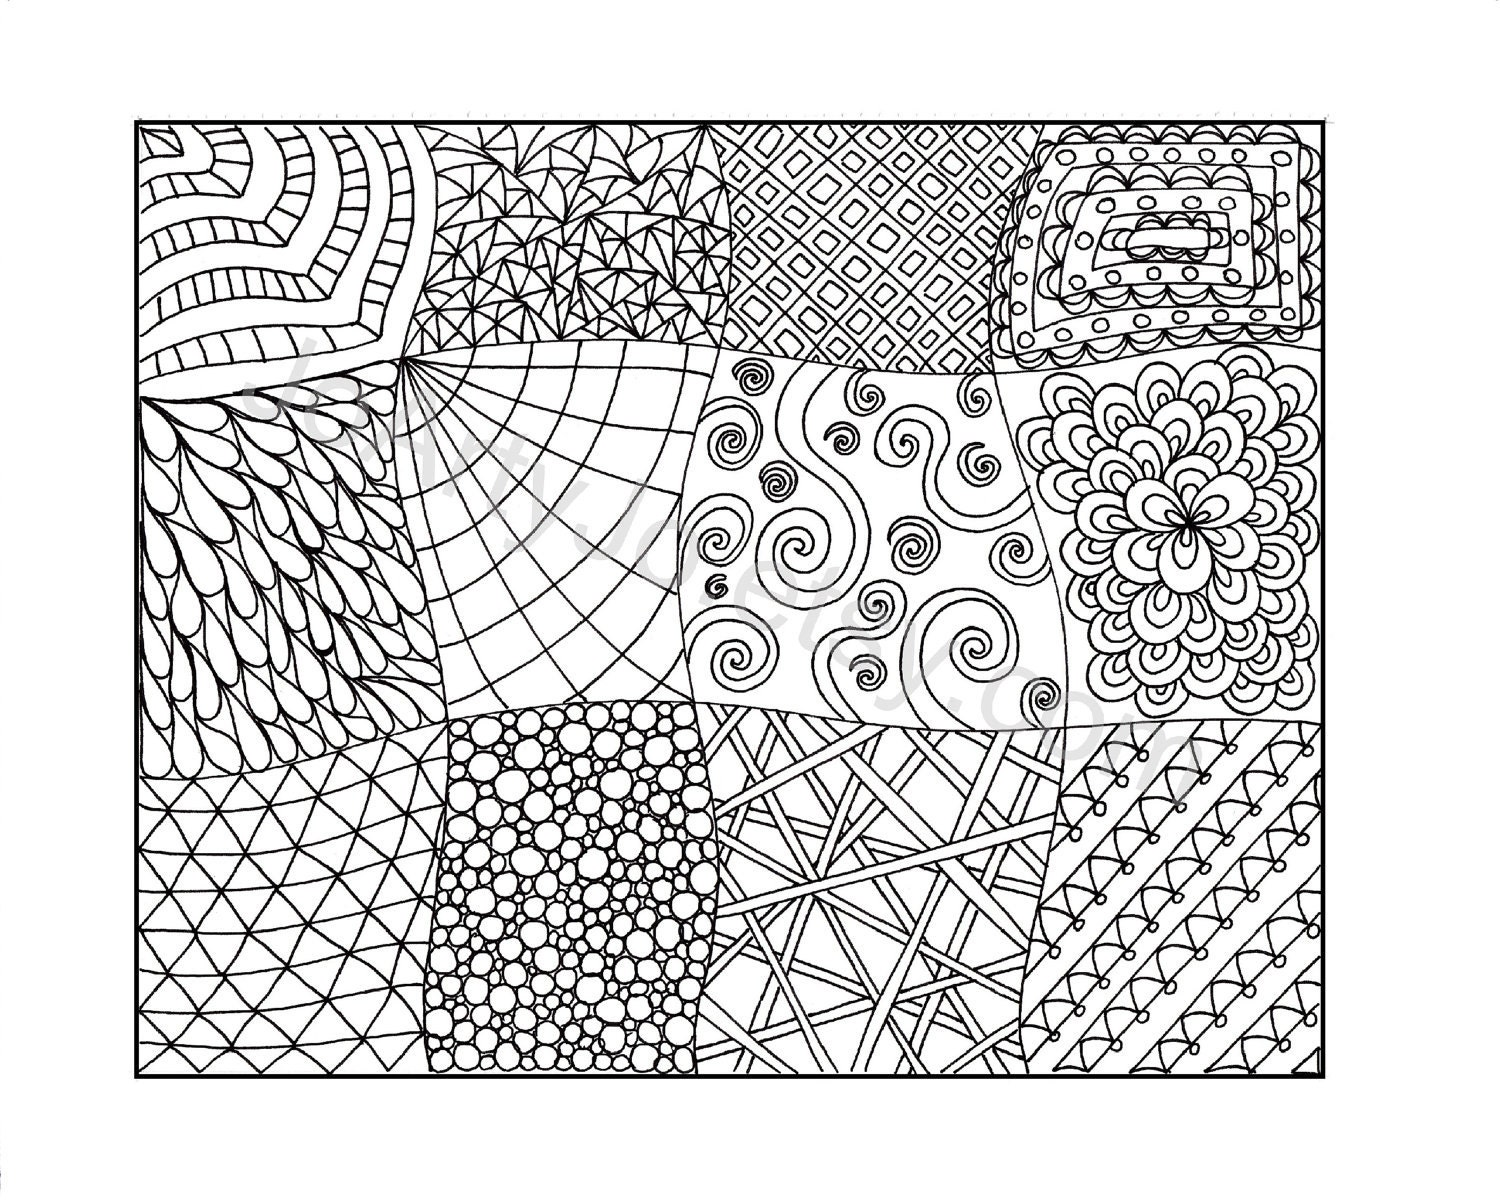 Abstract Coloring Pages Free Pdf : Zendoodle coloring page printable pdf zentangle by joartyjo